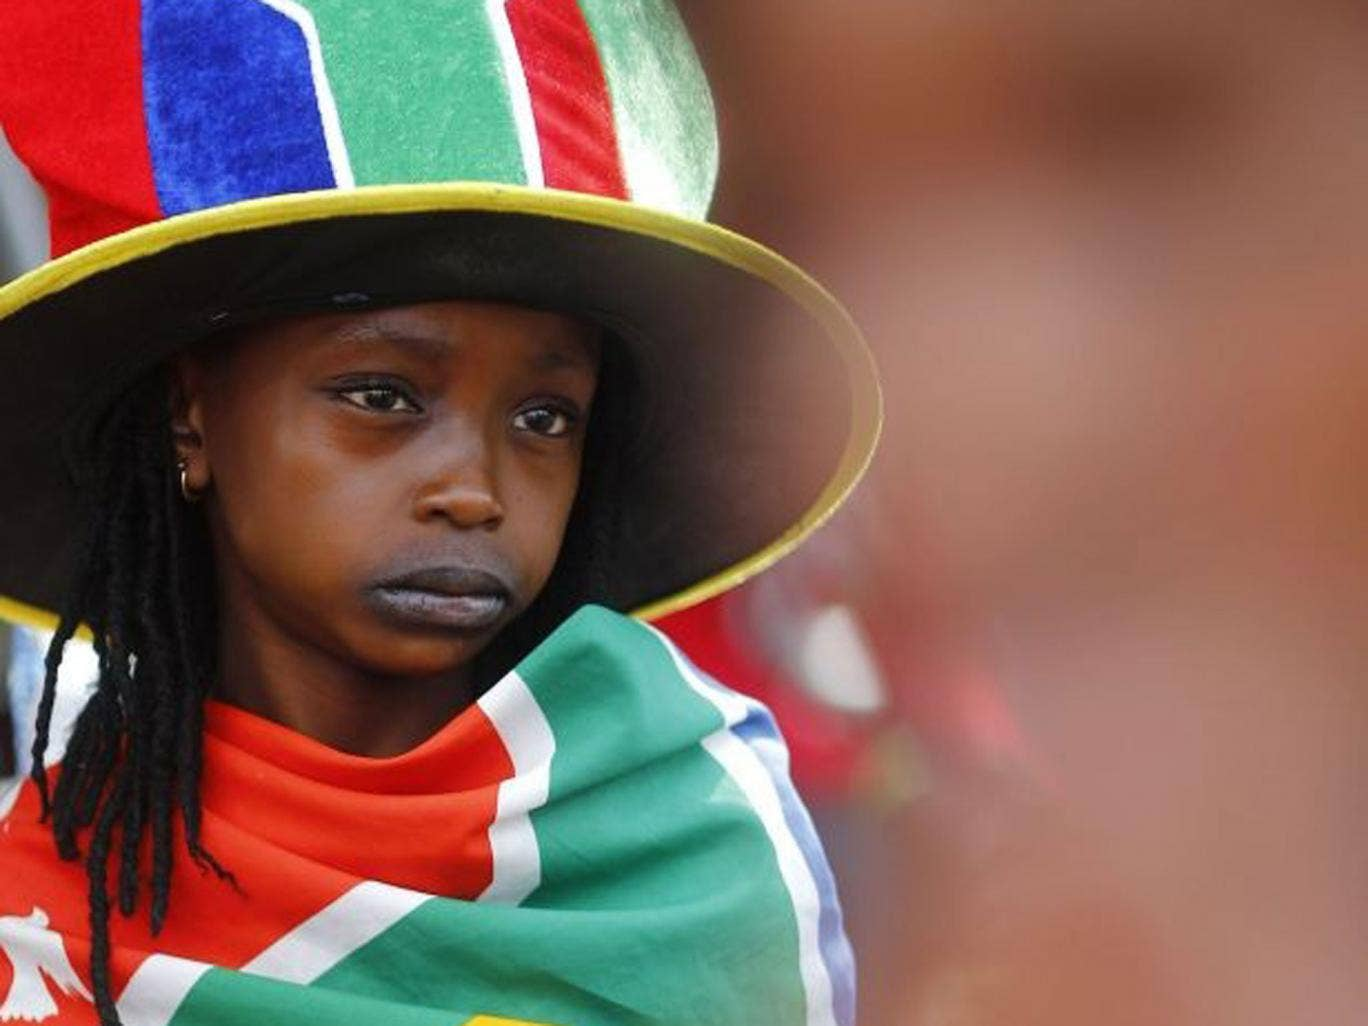 Tributes: A child in patriotic garb outside Mandela's former home in Soweto